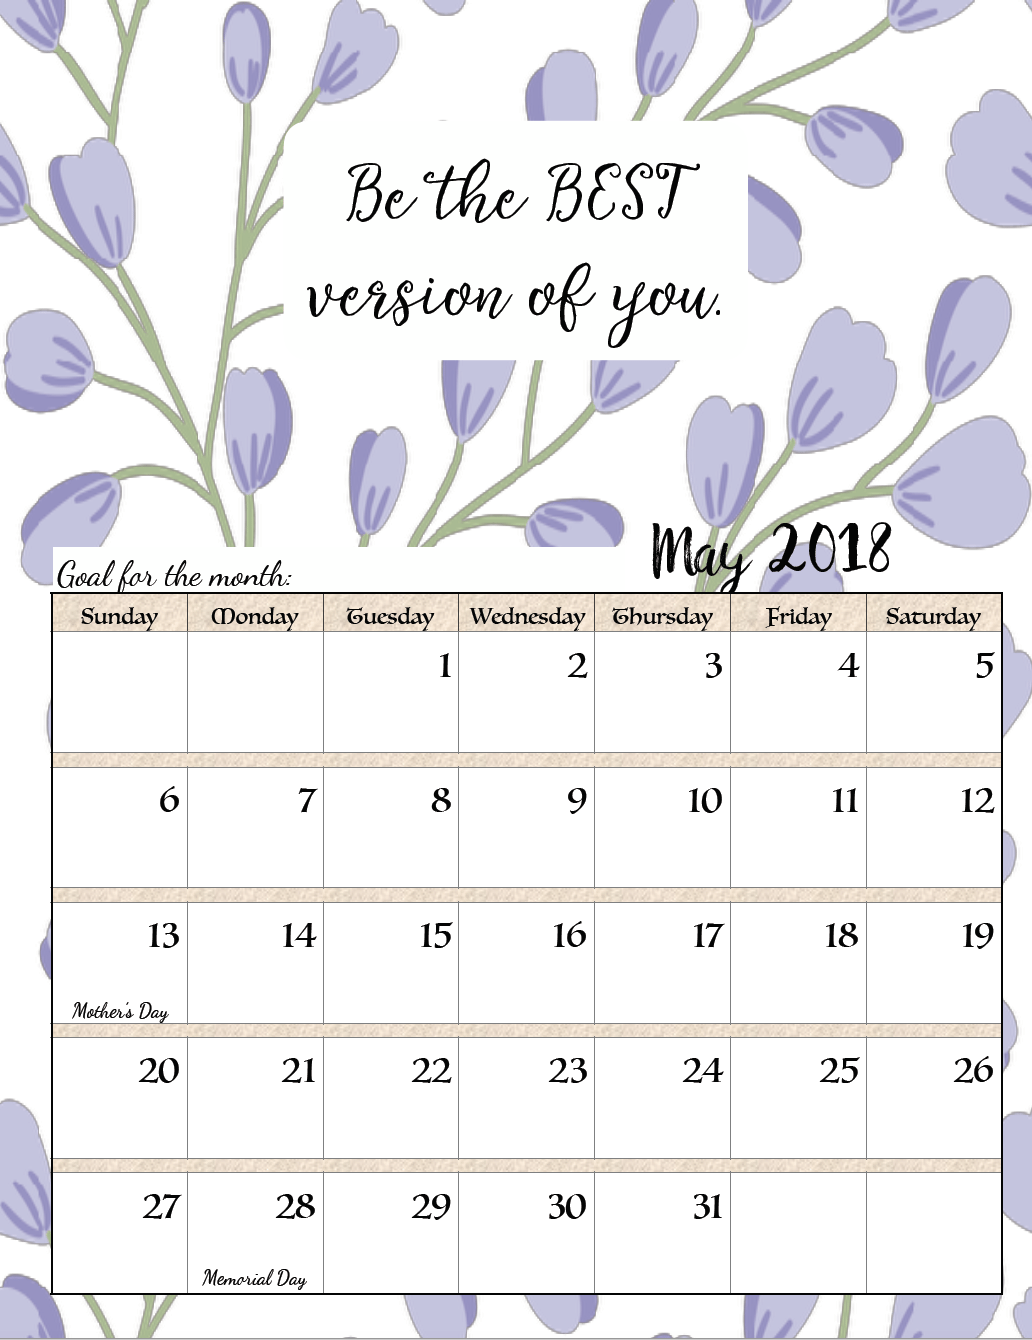 Calendar Organization Quotes : May calendar with inspirational quotes